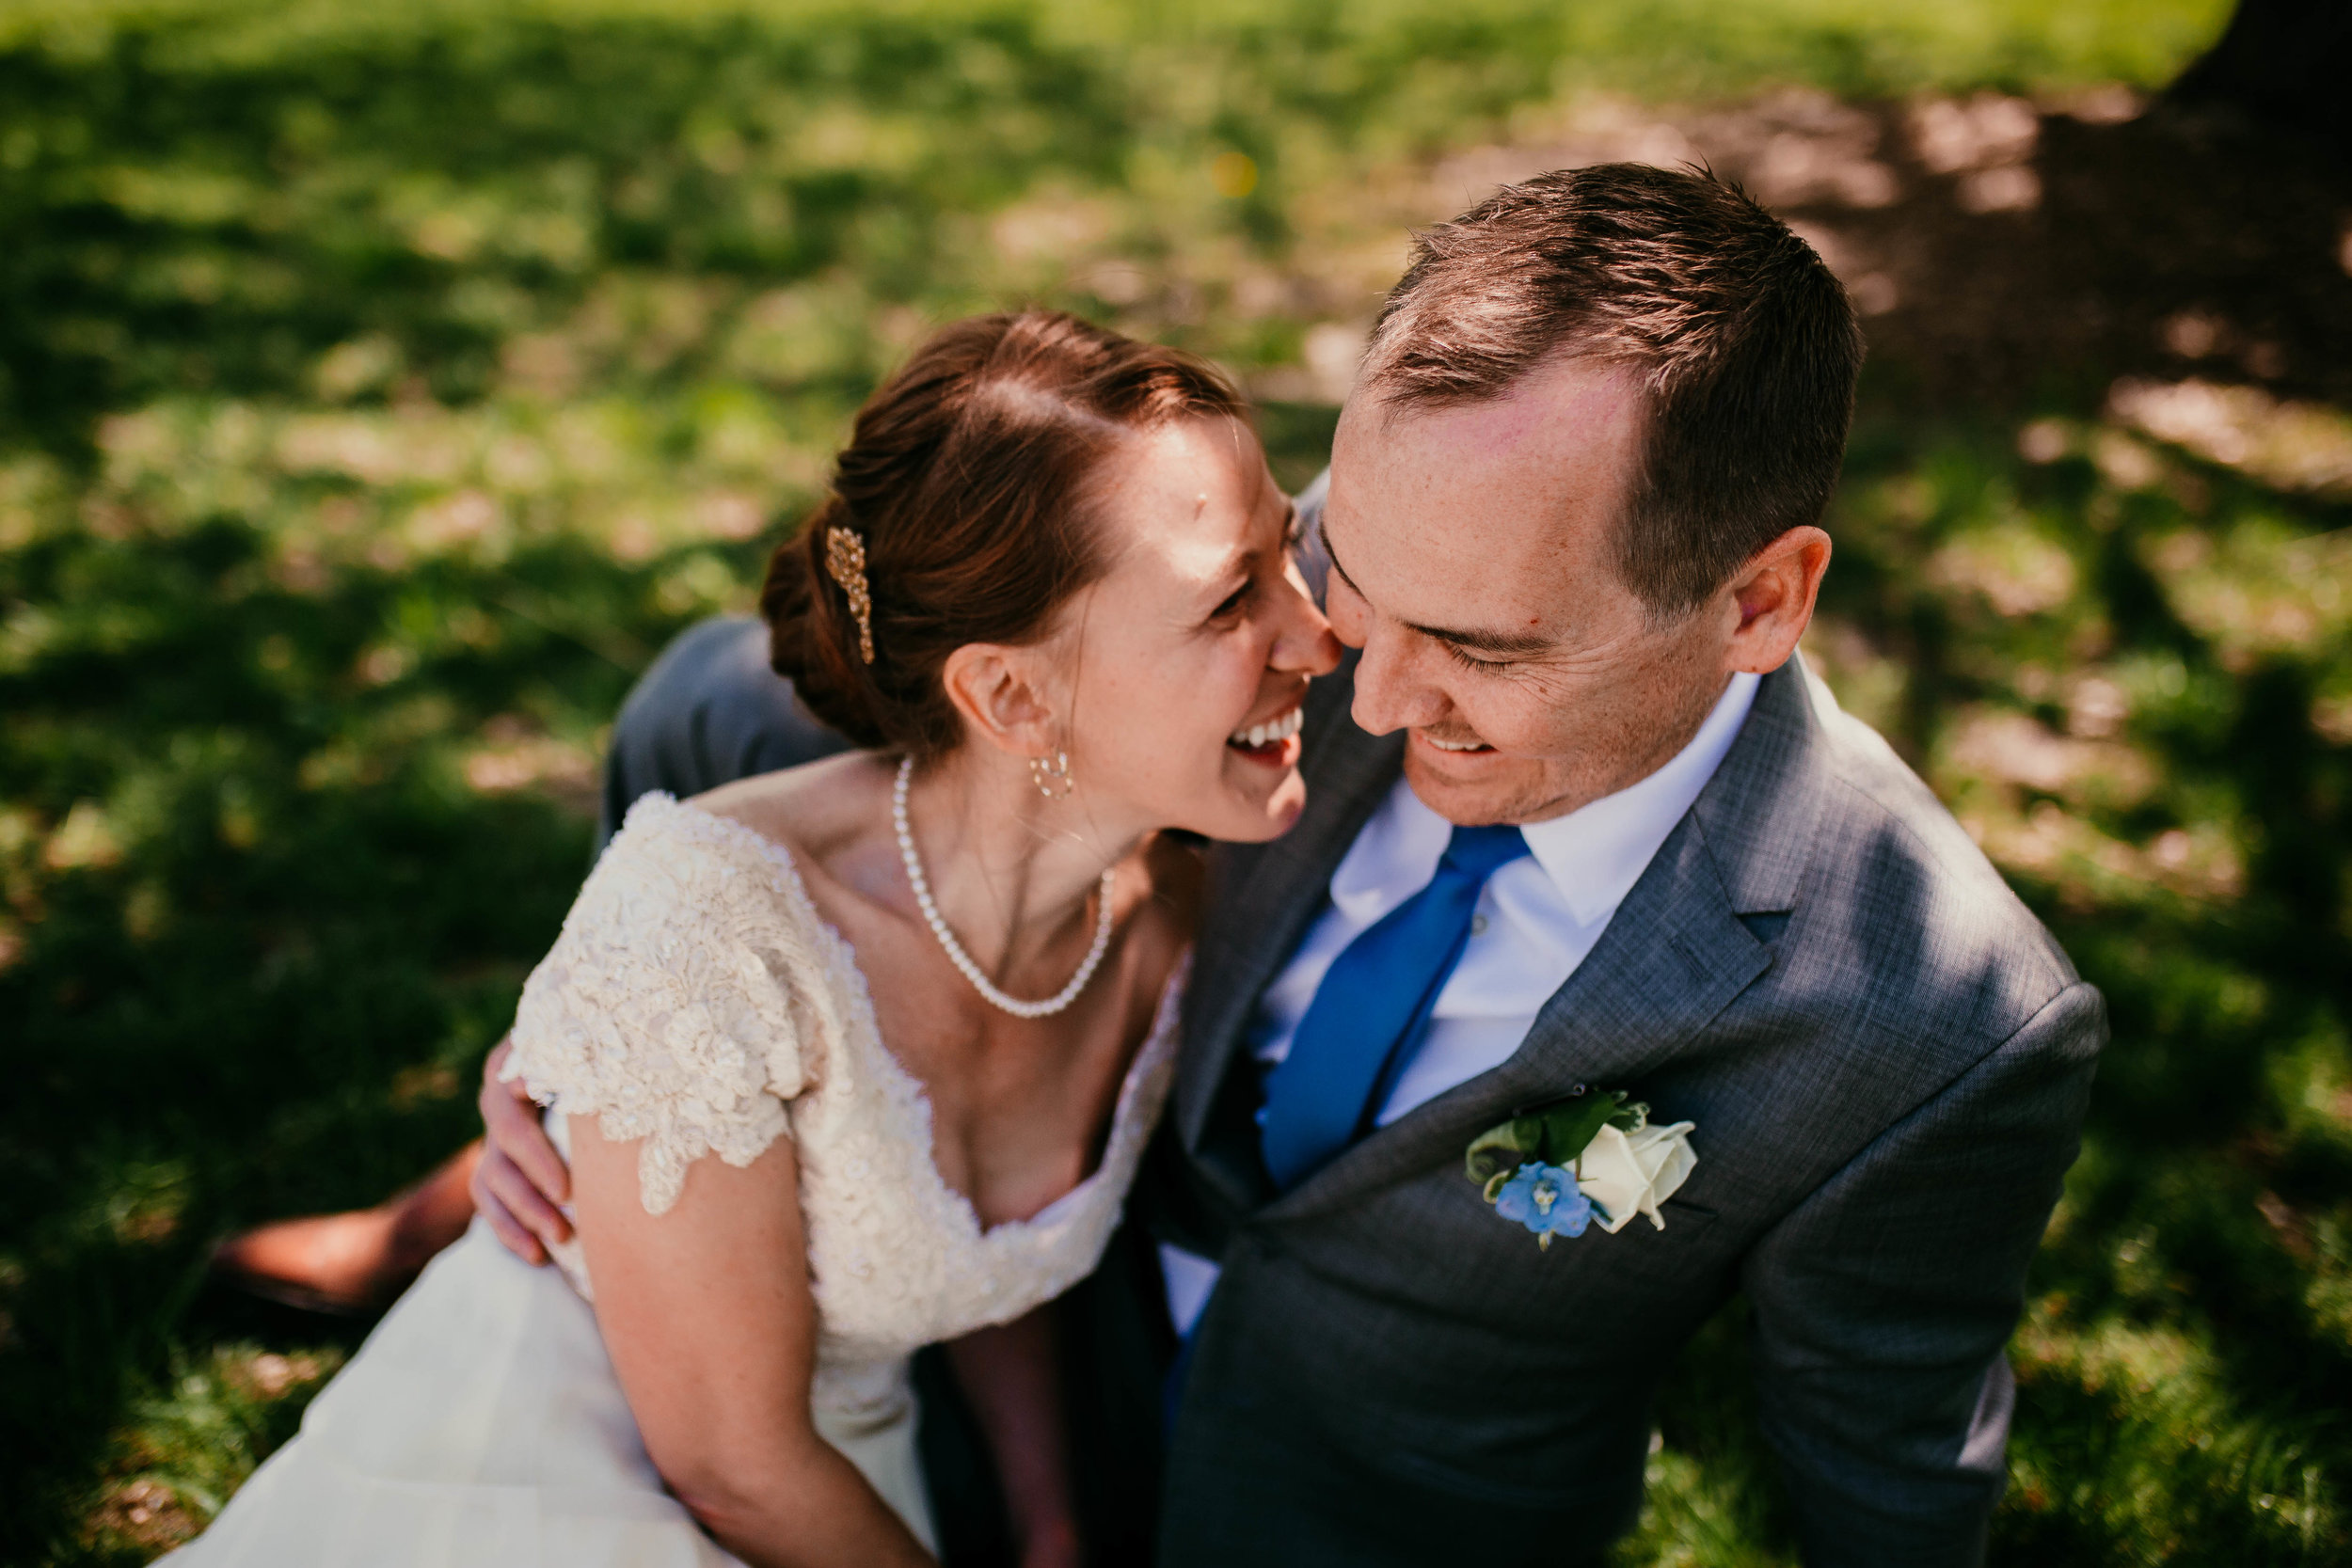 Bert & Lauren's North Kansas City Spring Wedding | Hannahill Photography | Raleigh Durham Photographer | North Carolina Wedding Photography | Family Photographer | Wedding photographer | the bride and groom cuddle together in color